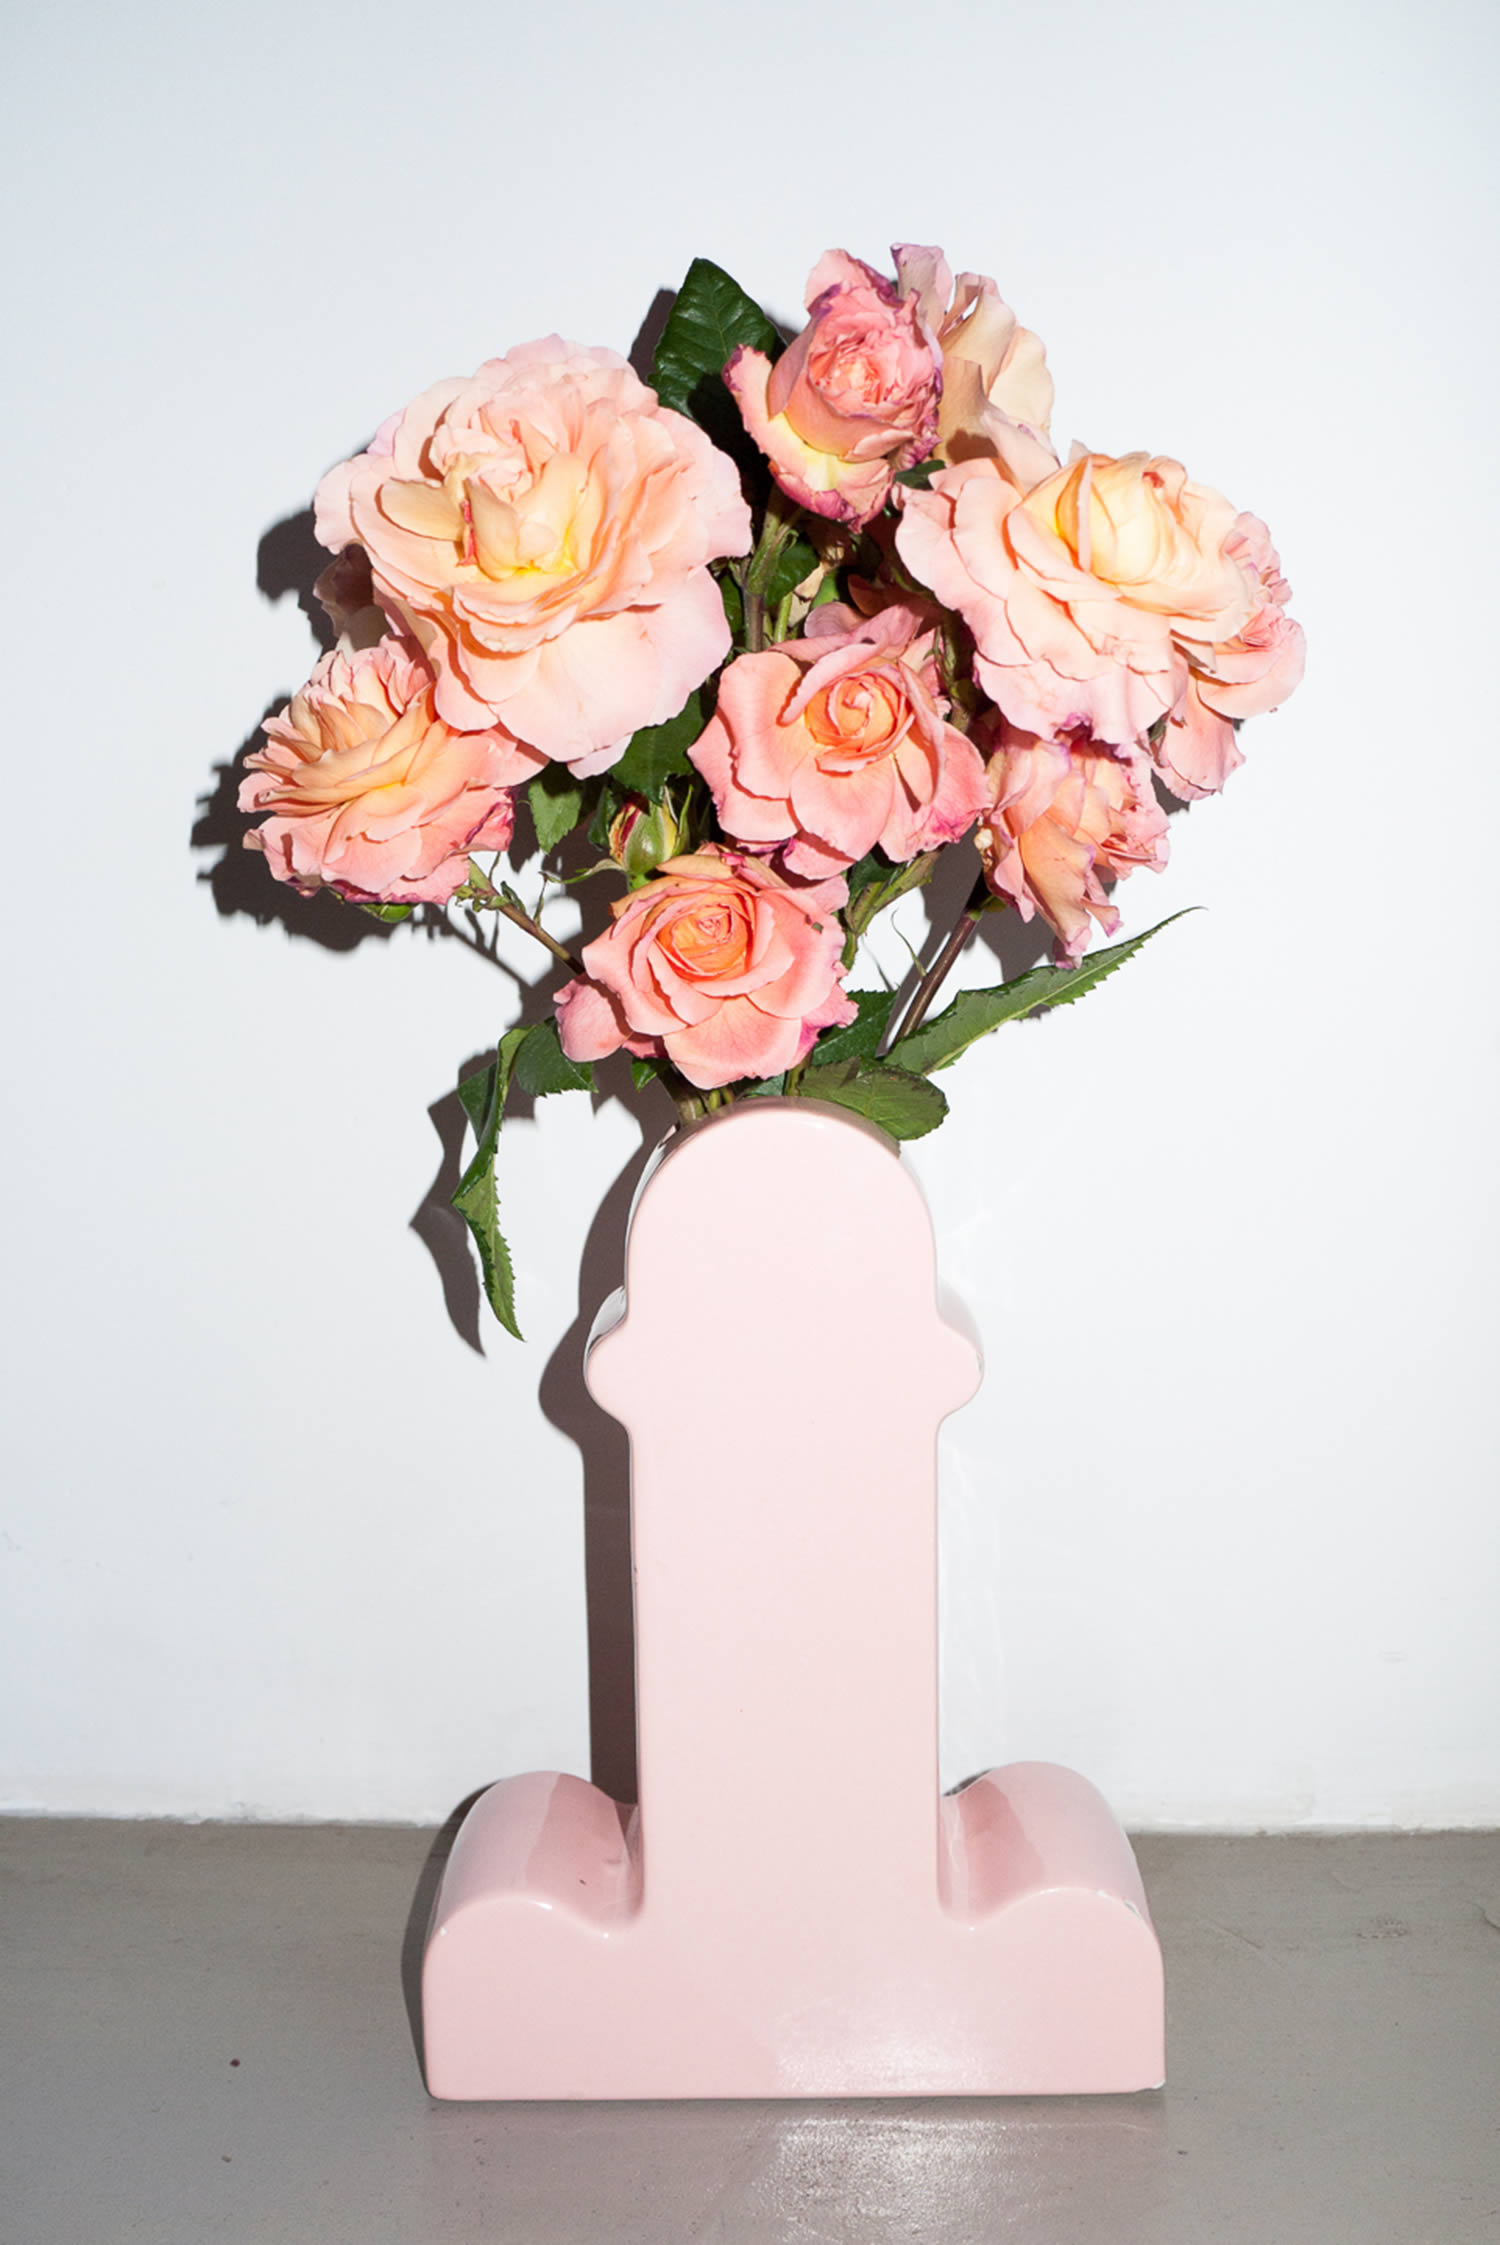 sottass vase with flowers